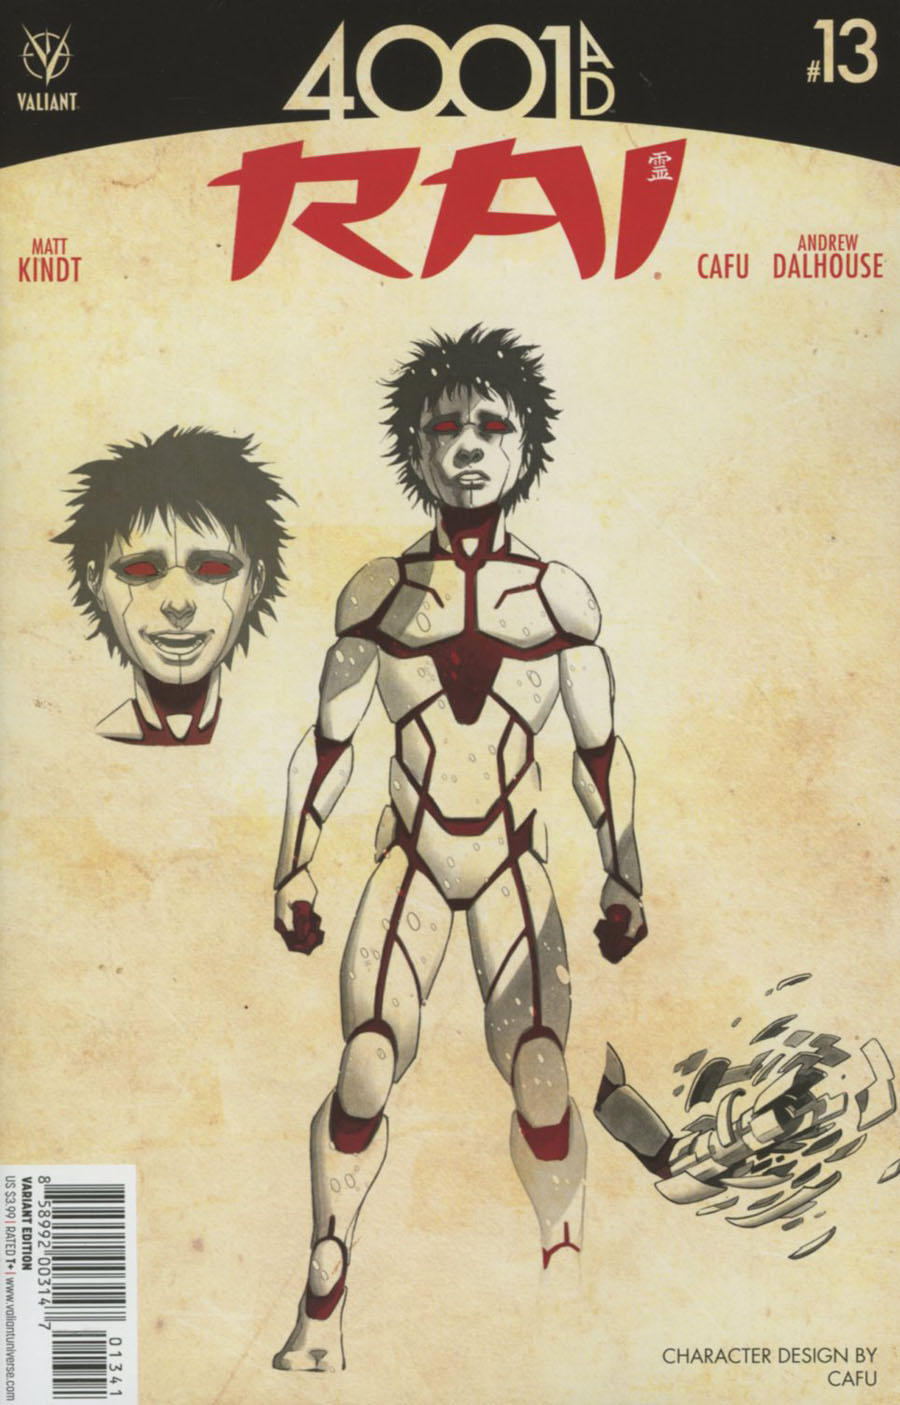 Rai Vol 2 #13 Cover D Incentive CAFU Character Design Variant Cover (4001 AD Tie-In)